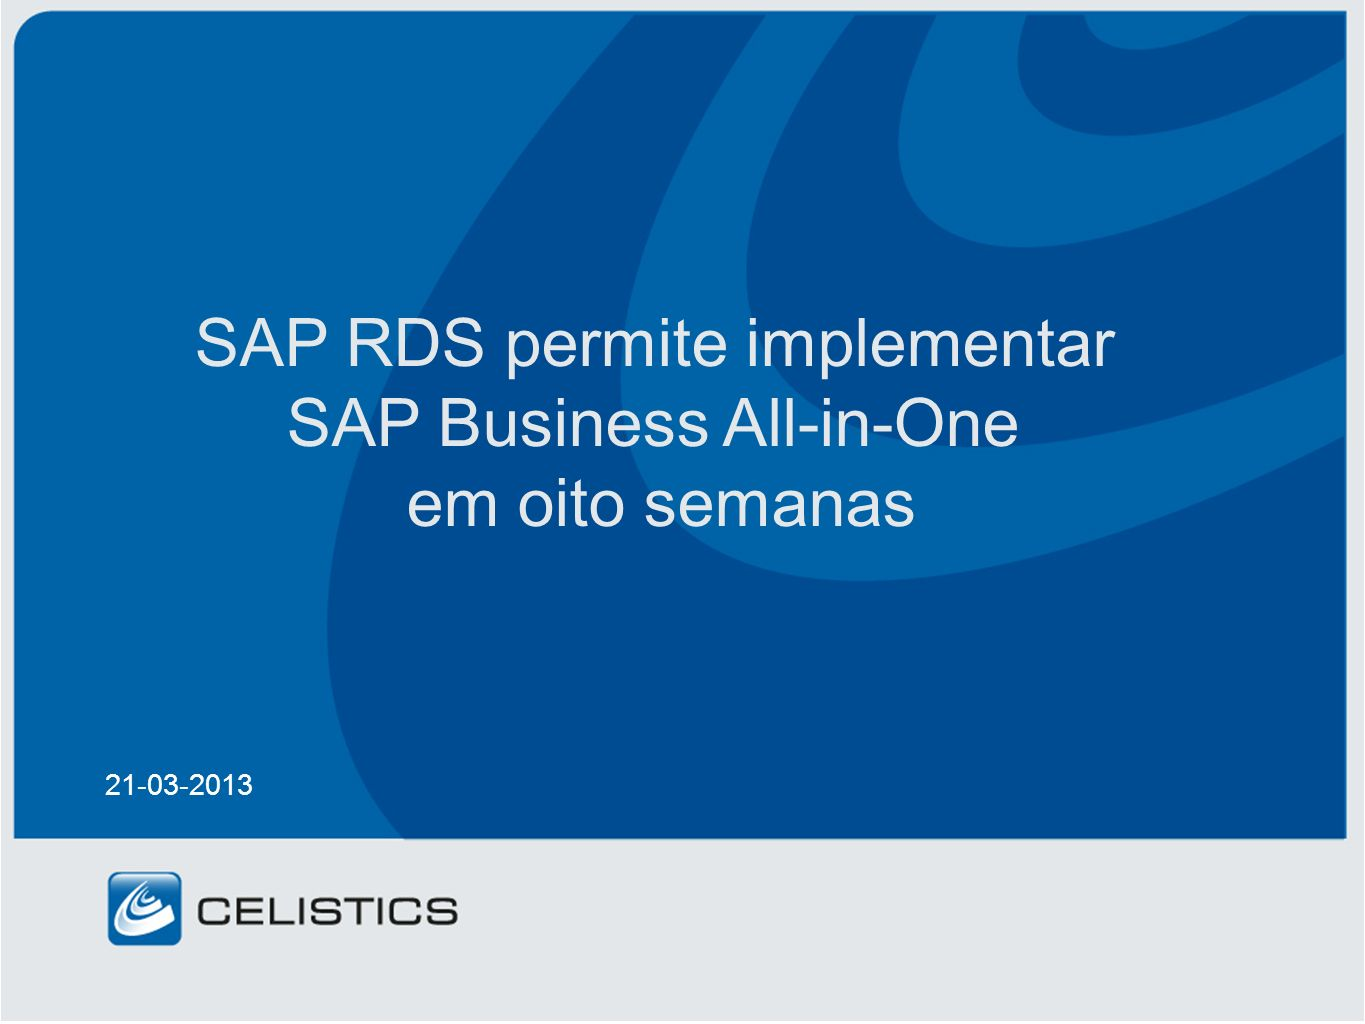 SAP RDS permite implementar SAP Business All-in-One em oito semanas 21-03-2013